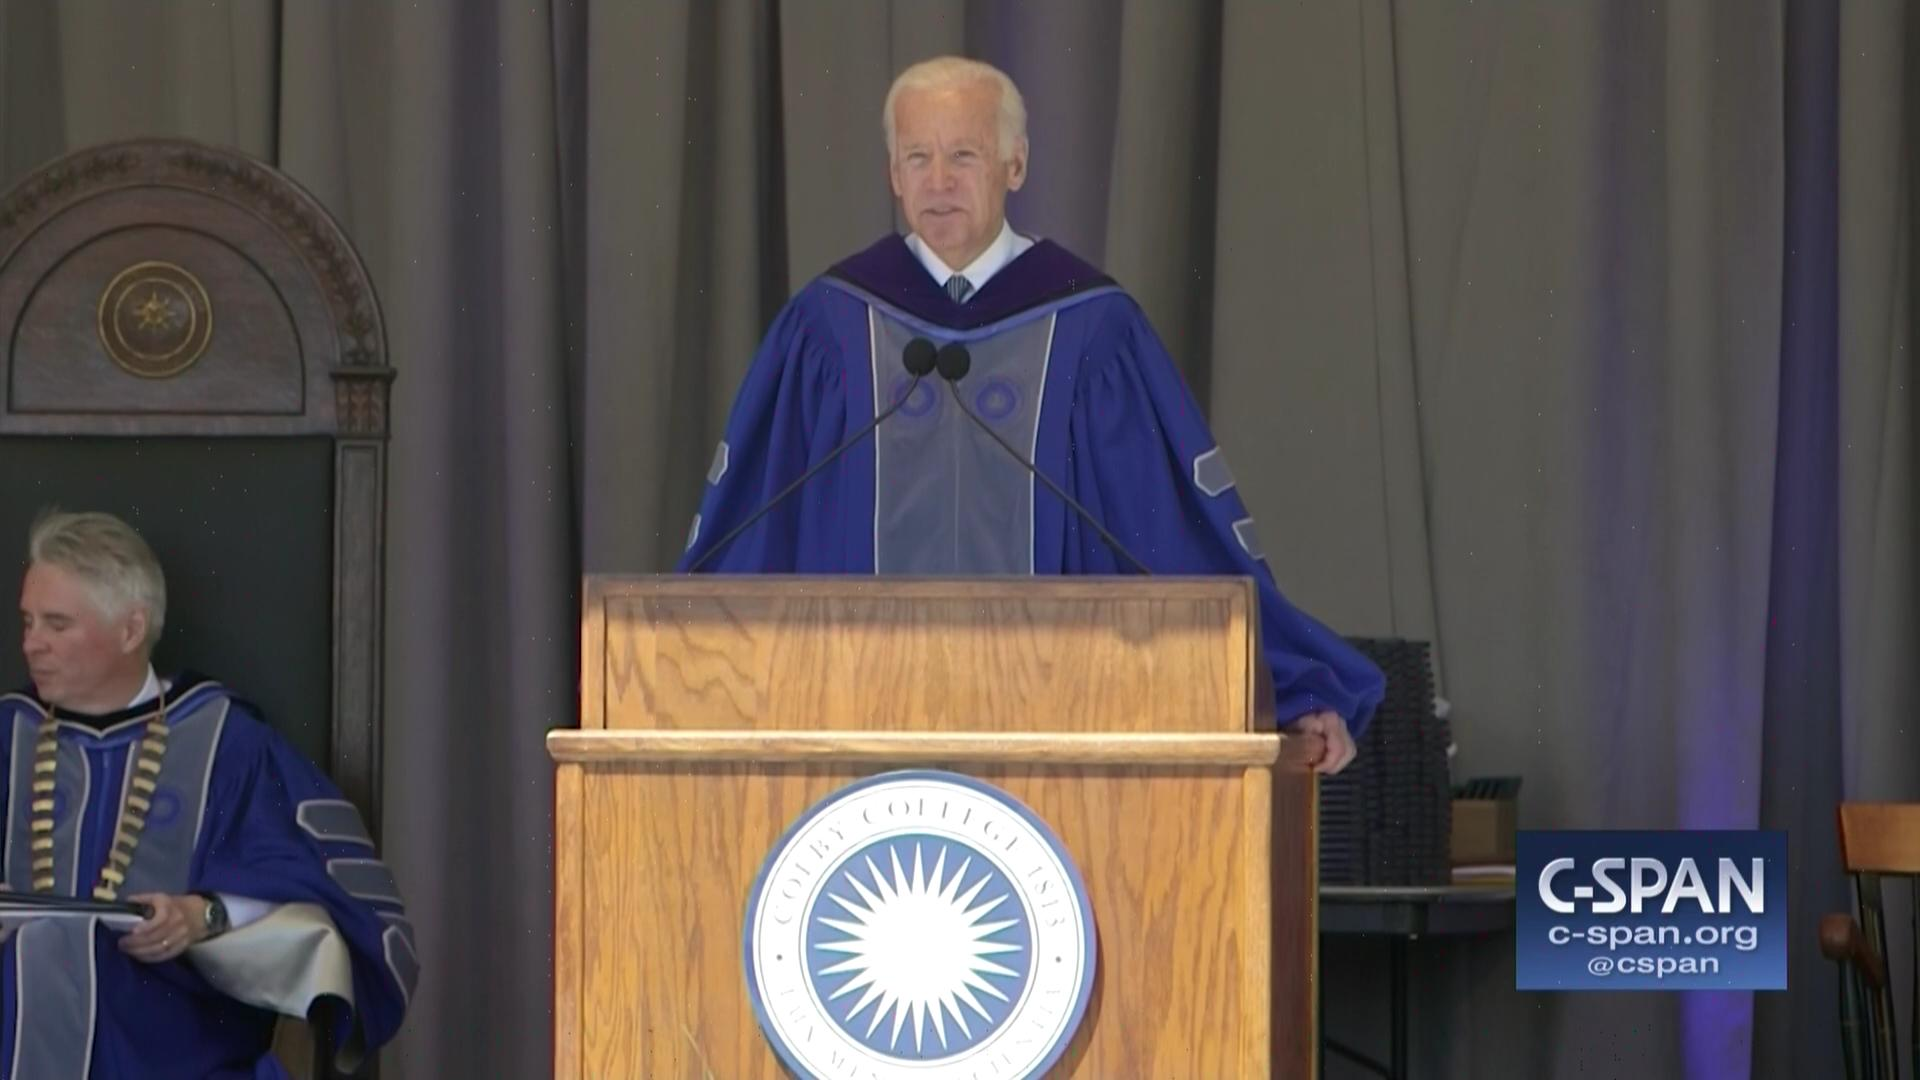 Vice President Biden Delivers Colby College Commencement Address, May 21  2017